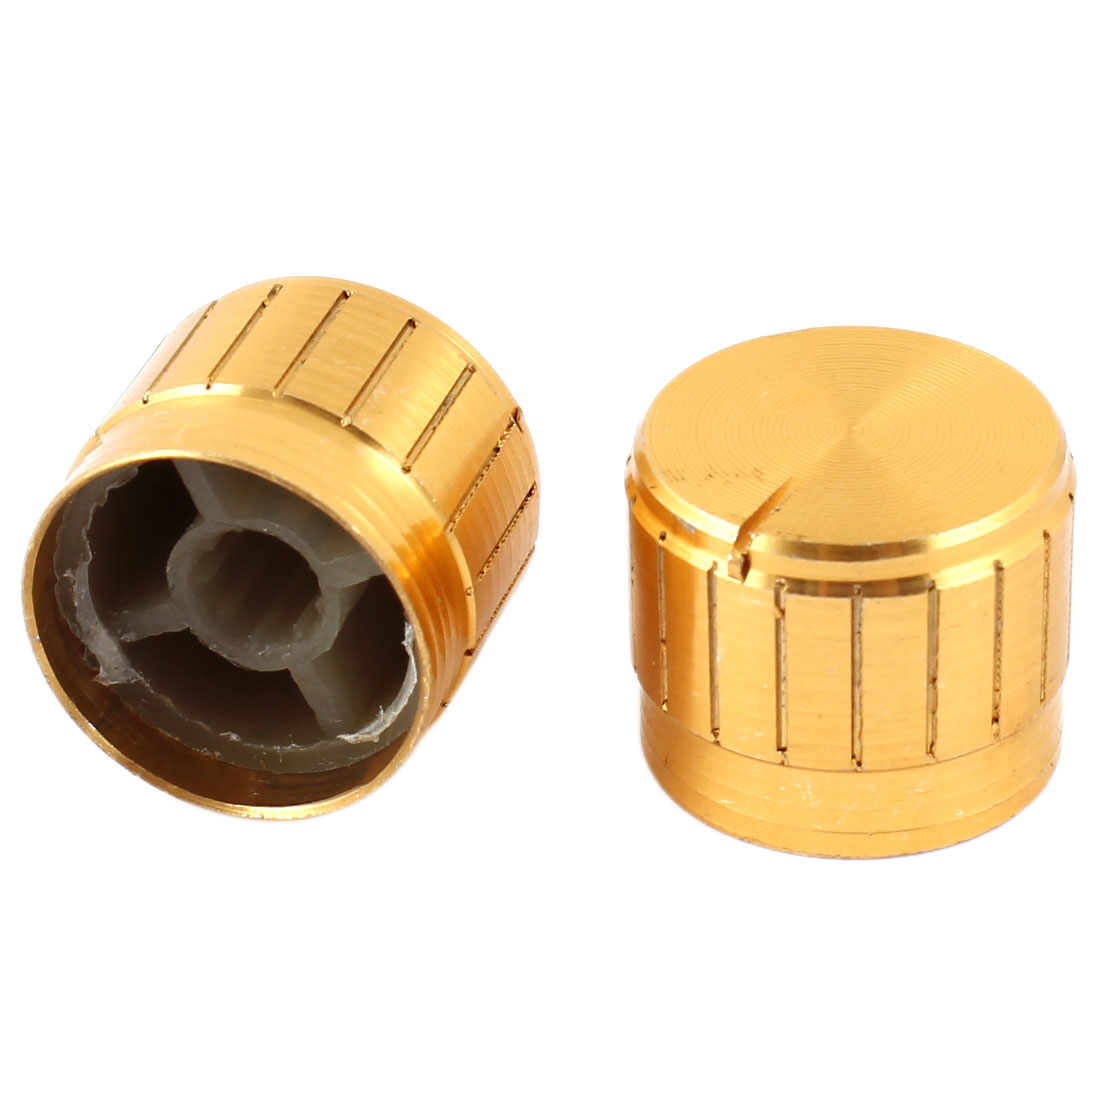 2 Pcs Gold Tone Volume Control Rotary Aluminum Potentiometer Knobs 21mm x 17mm